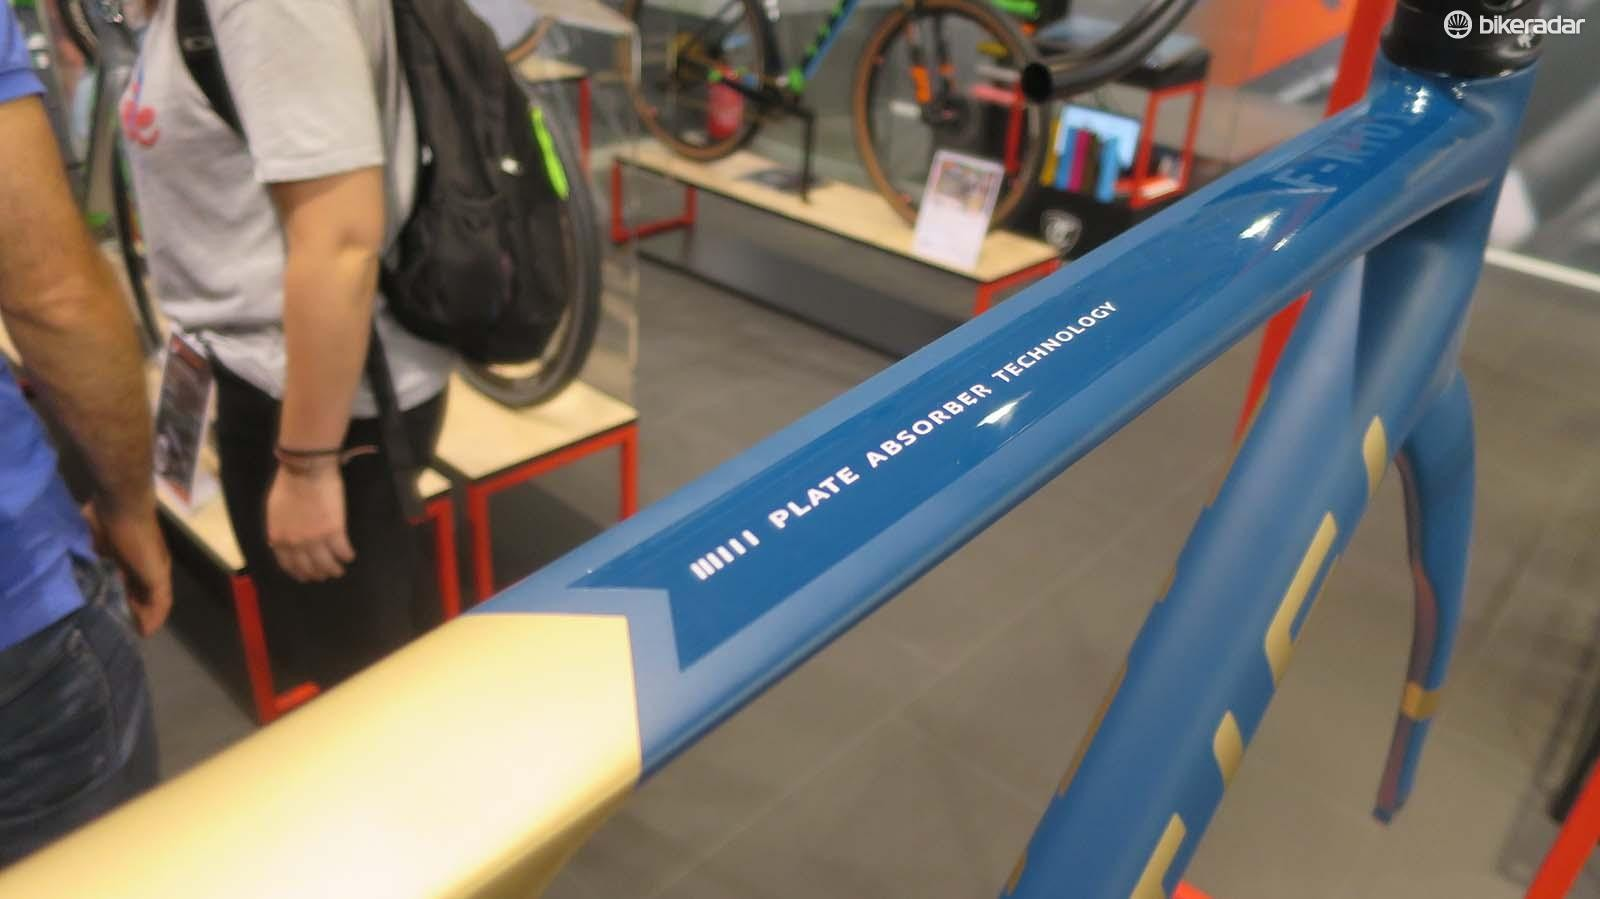 """We're glad Titici has renamed its flattened top tube design rather than the unfortunate """"flexi"""" name it was originally known by"""